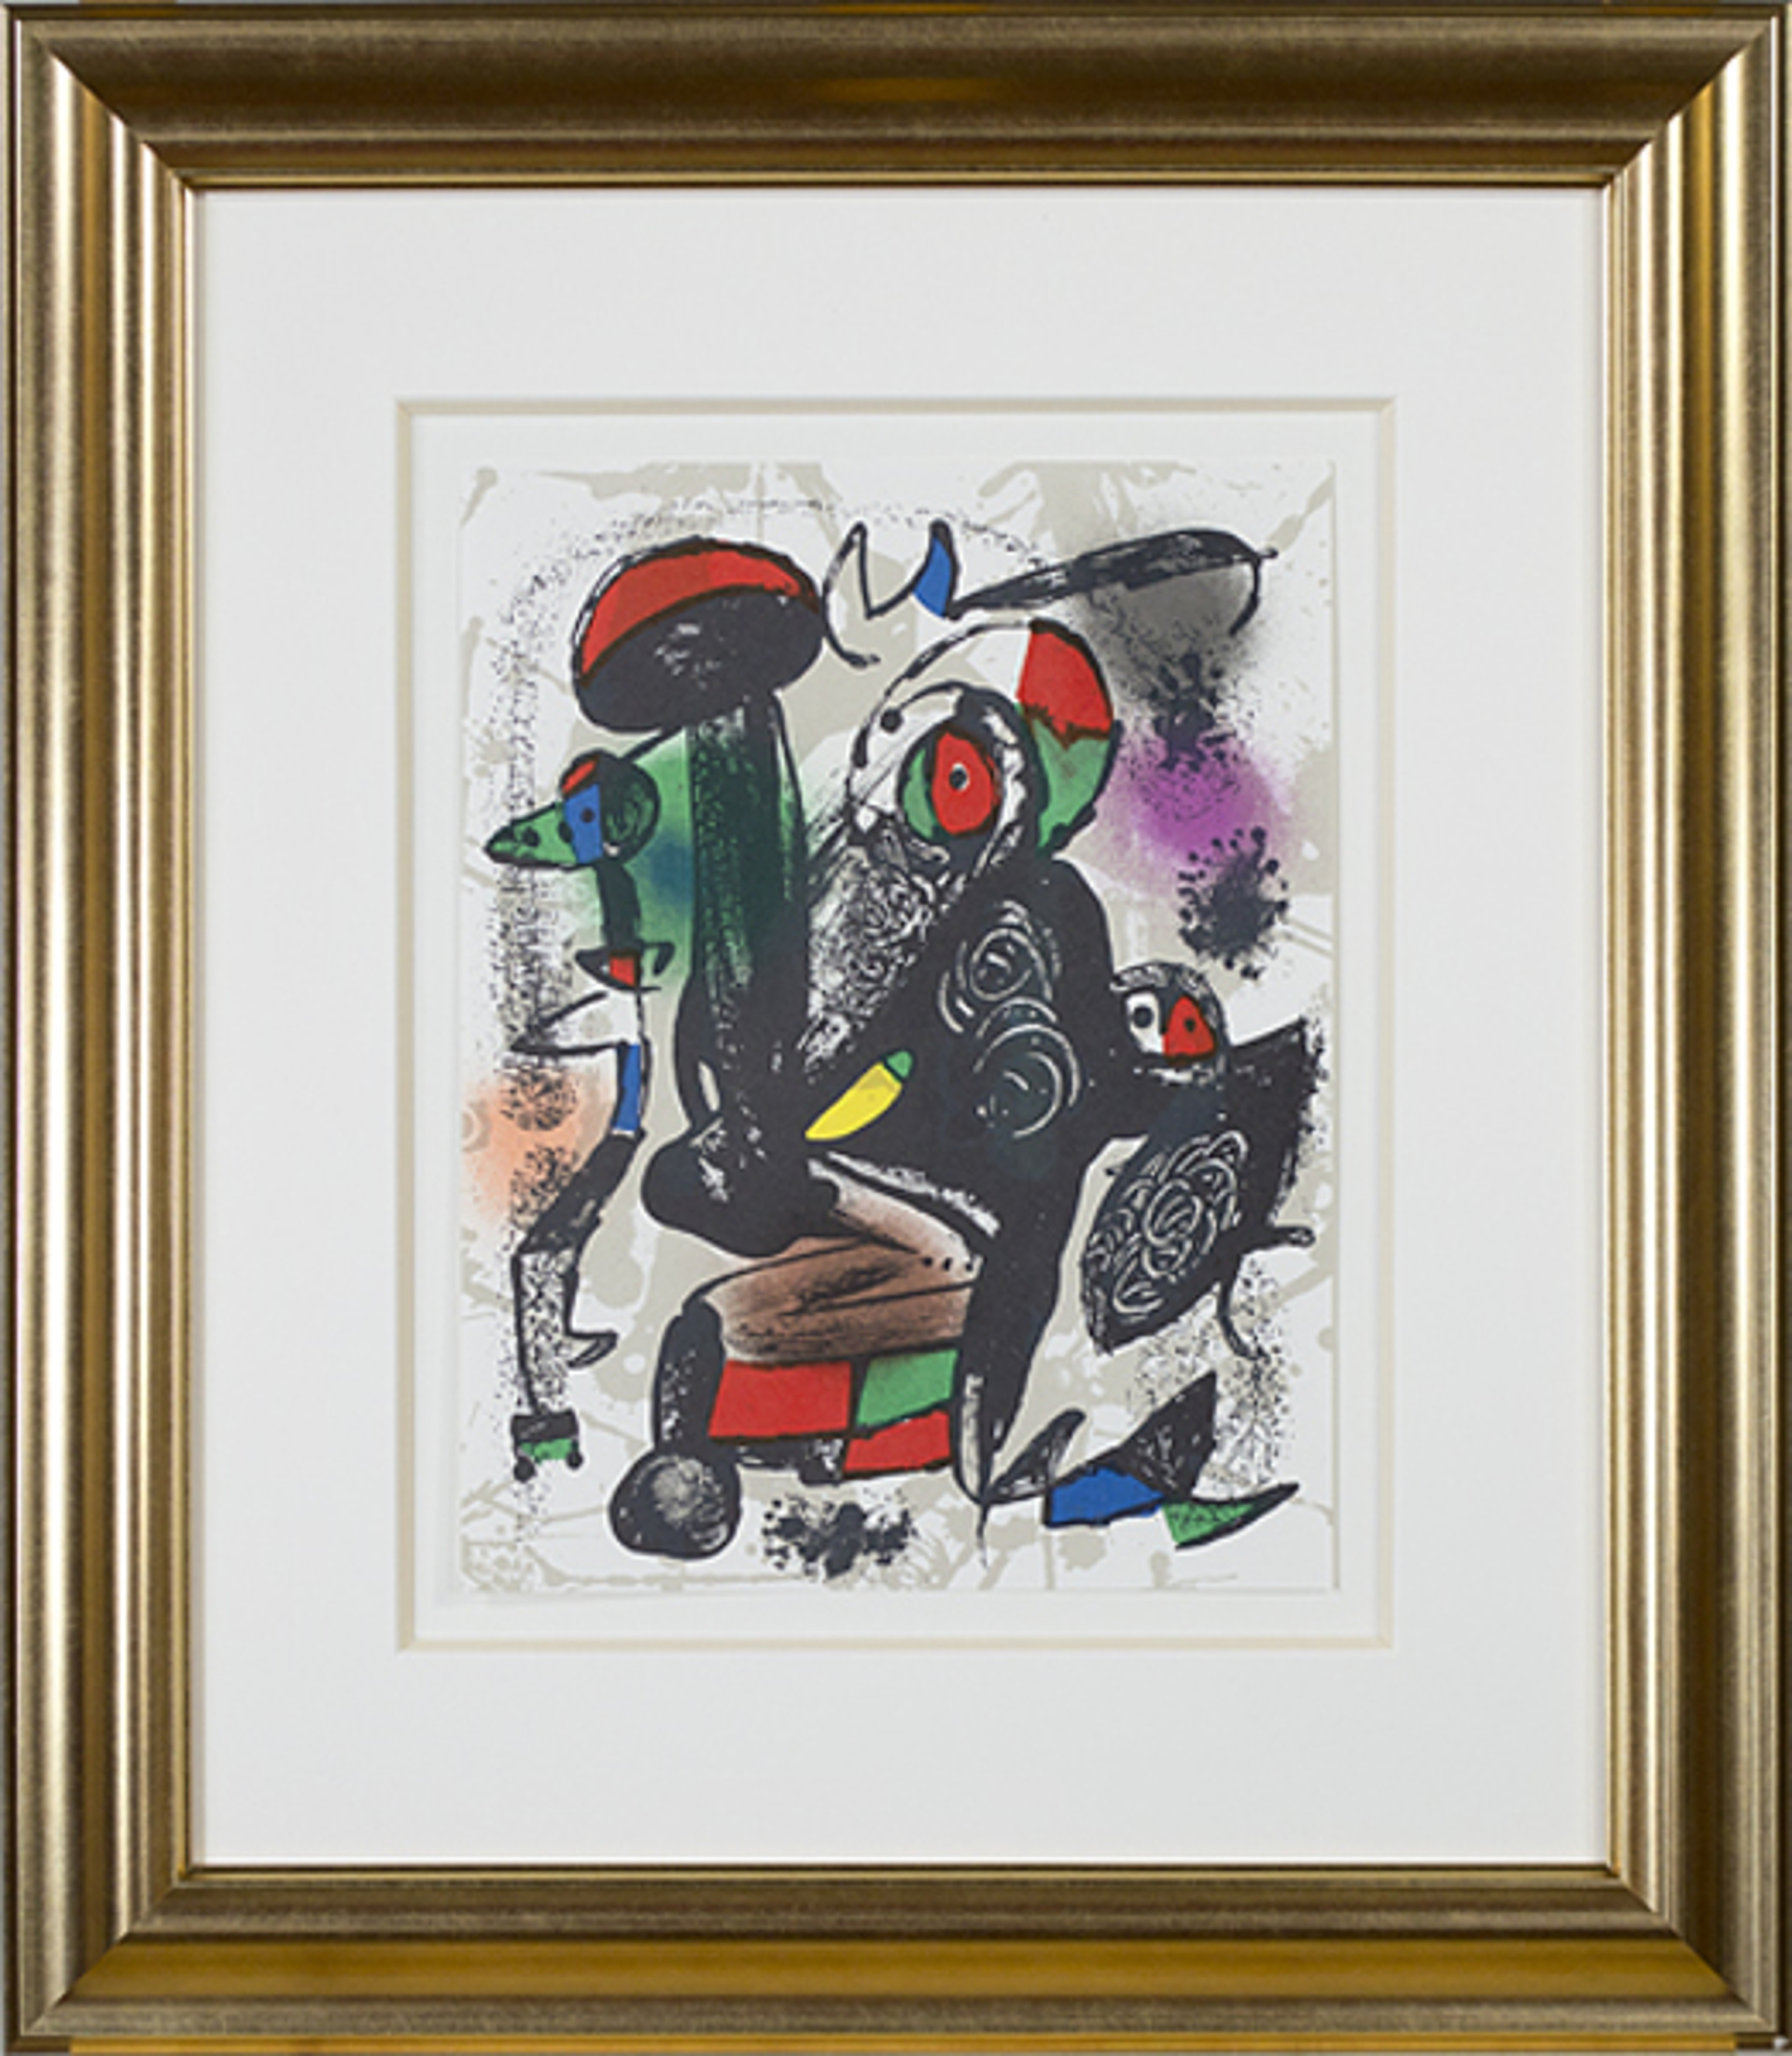 """Lithographie Originale III from """"Miro Lithographs IV, Maeght Publisher"""" by Joan Miro"""